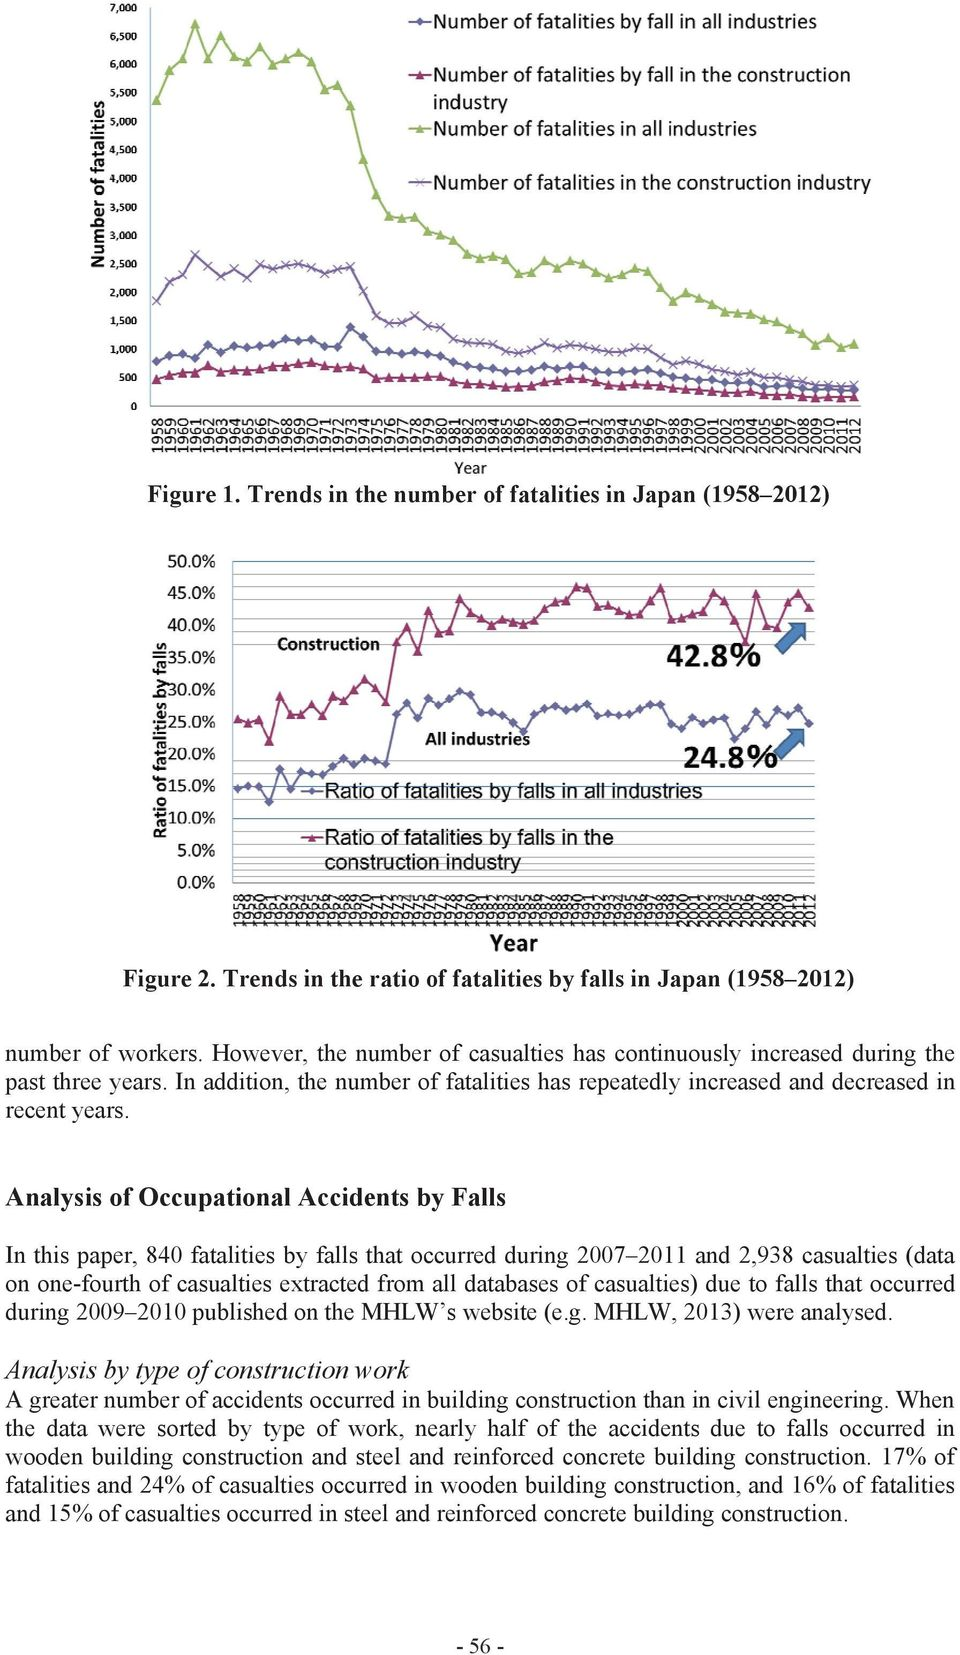 Analysis of Occupational Accidents by Falls In this paper, 840 fatalities by falls that occurred during 2007 2011 and 2,938 casualties (data on one-fourth of casualties extracted from all databases